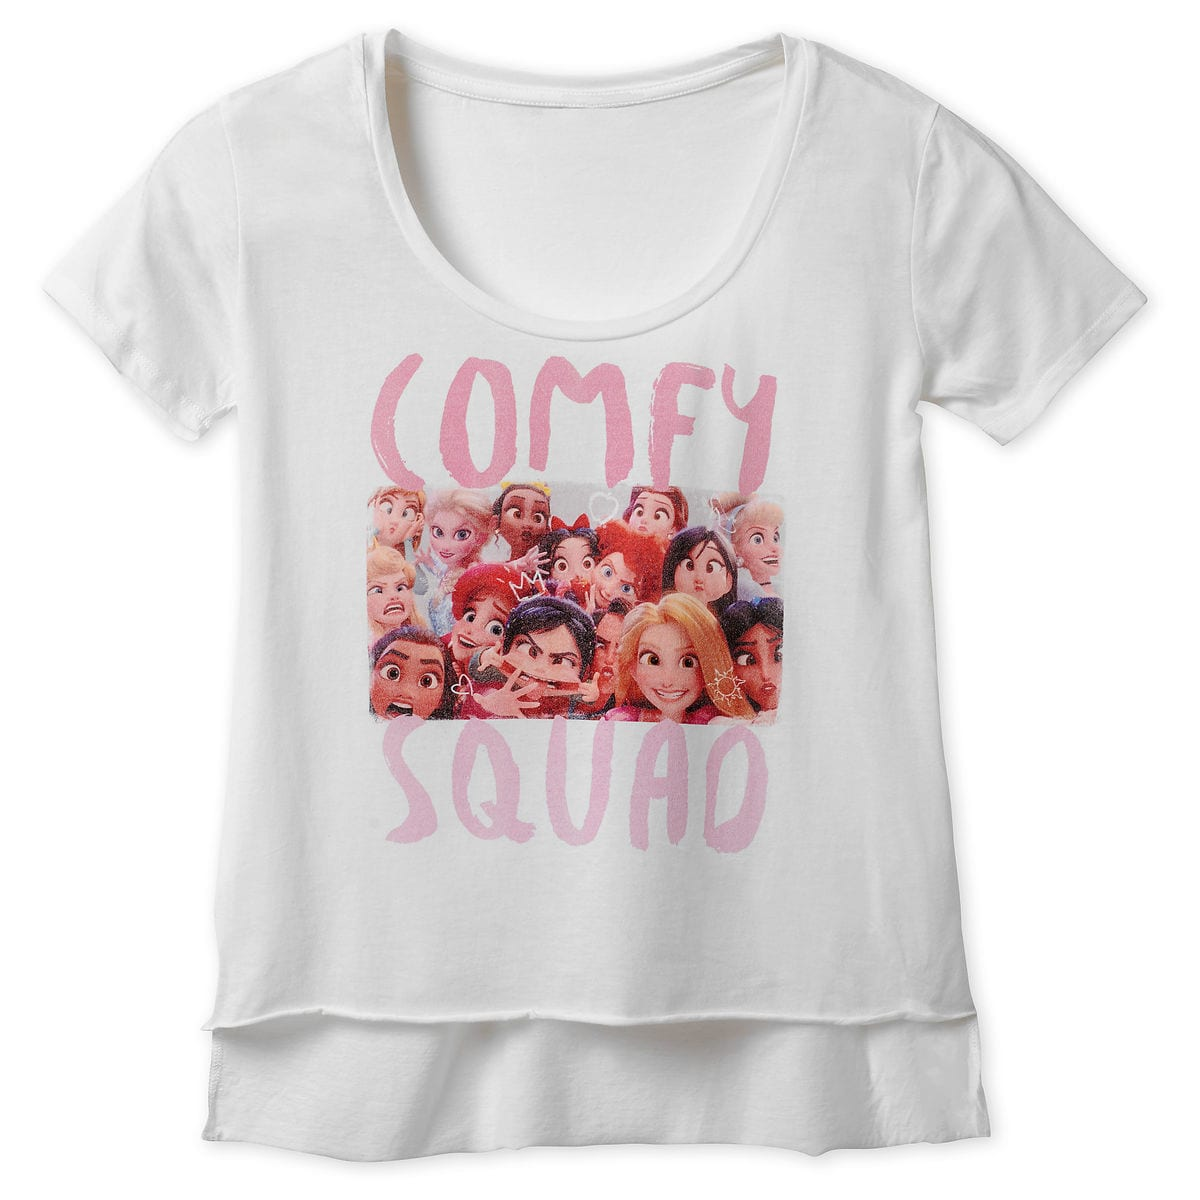 Vanellope and Disney Princesses ''Comfy Squad'' T-Shirt for Women